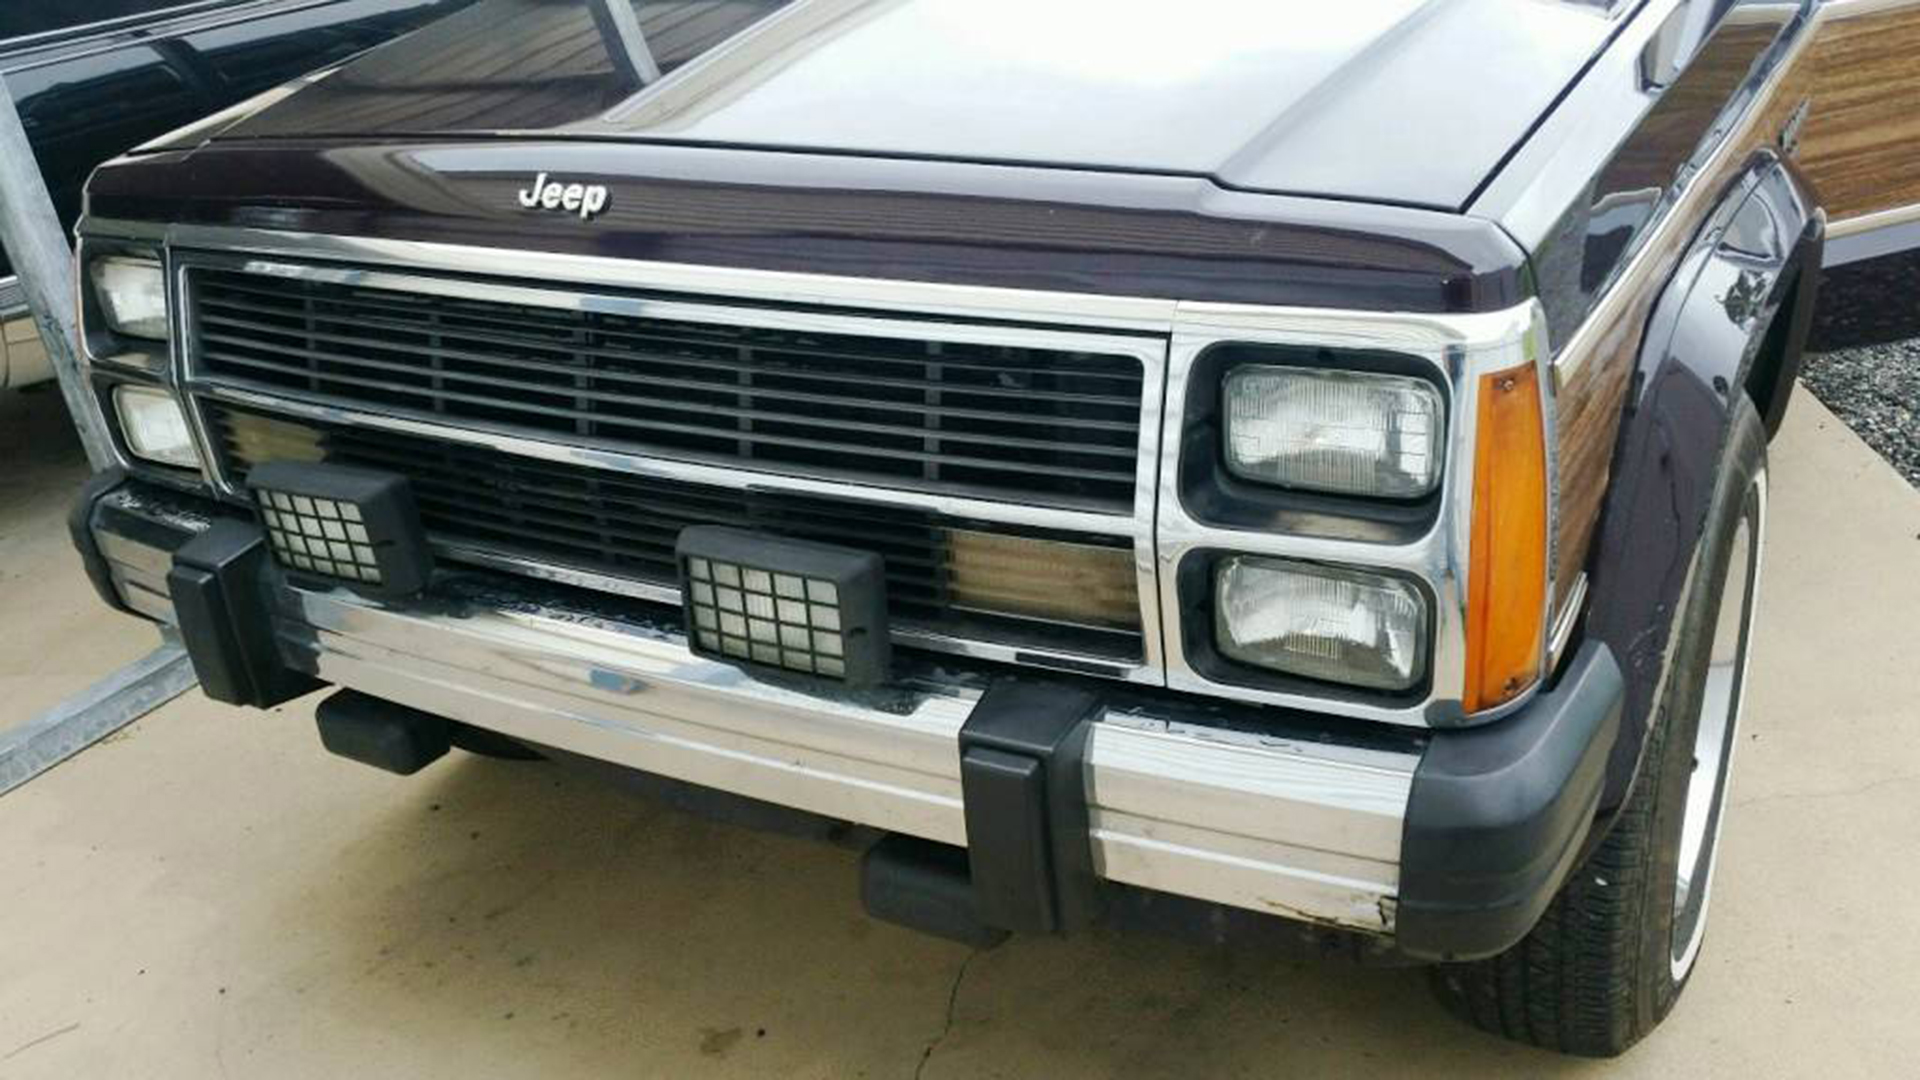 For Sale: Stock-Looking 1990 Jeep Wagoneer With Bulletproof